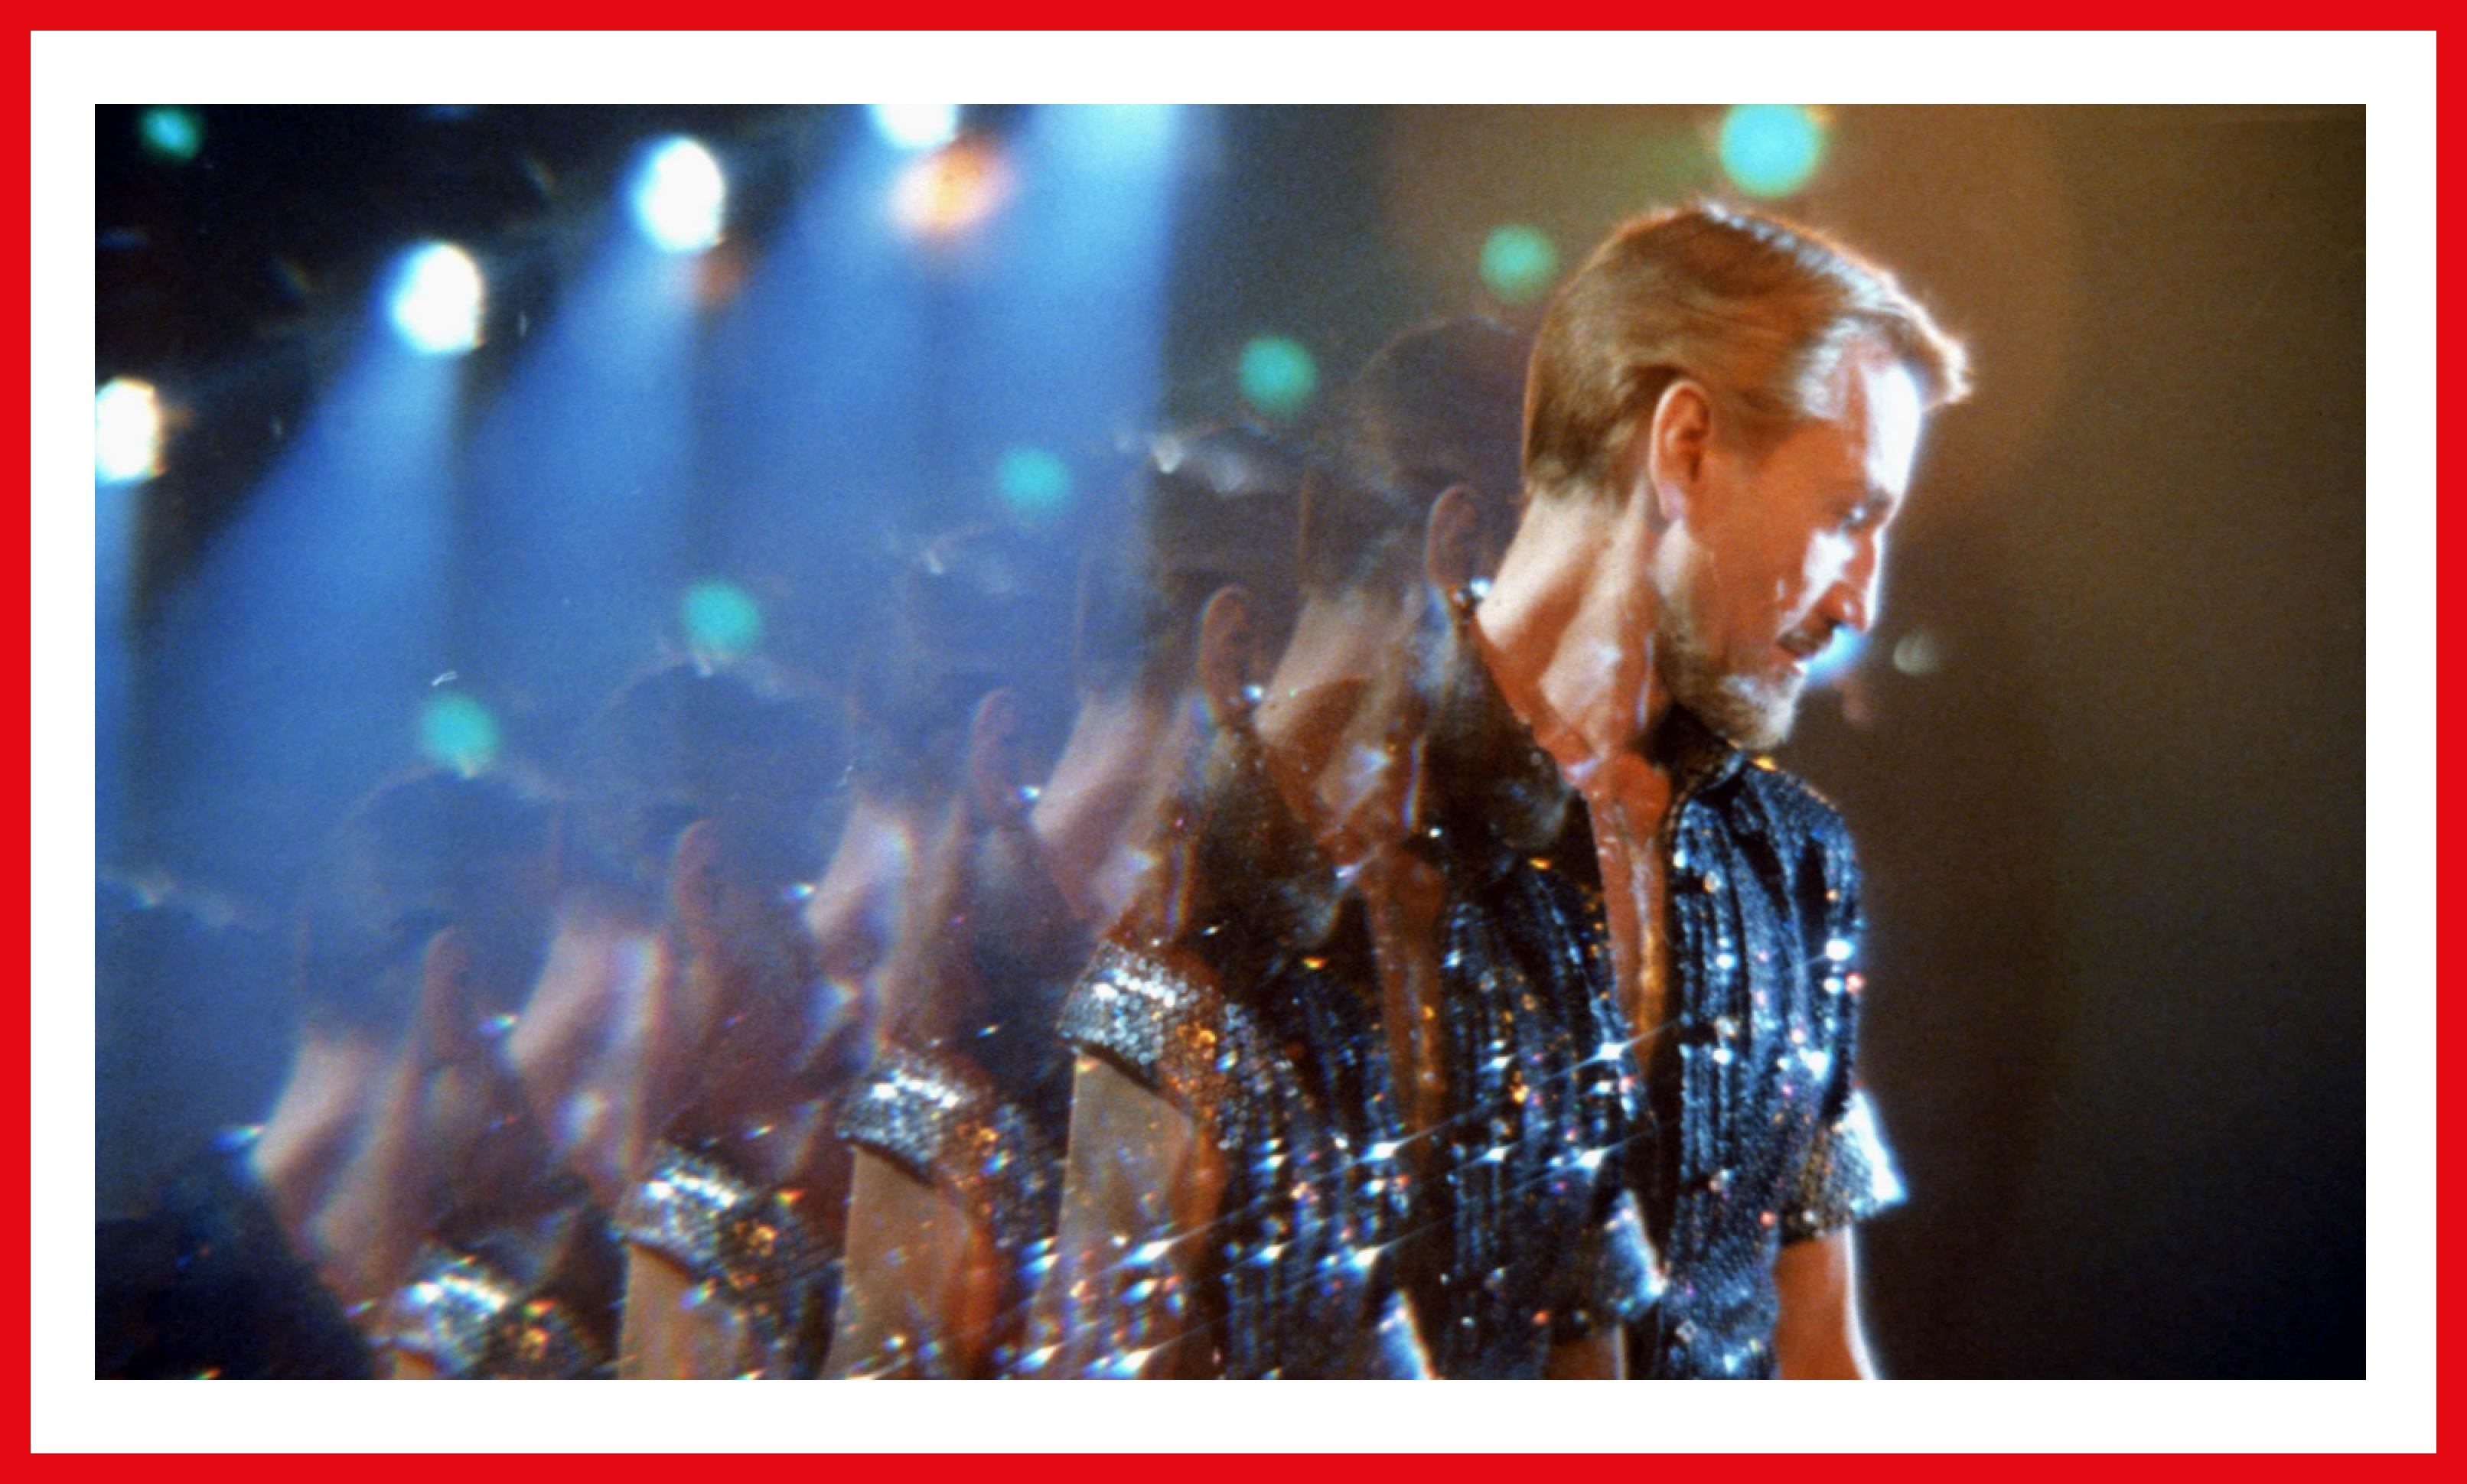 Scheider sparkles as Joe Gideon, with slicked back blonde hair and a glittering shirt